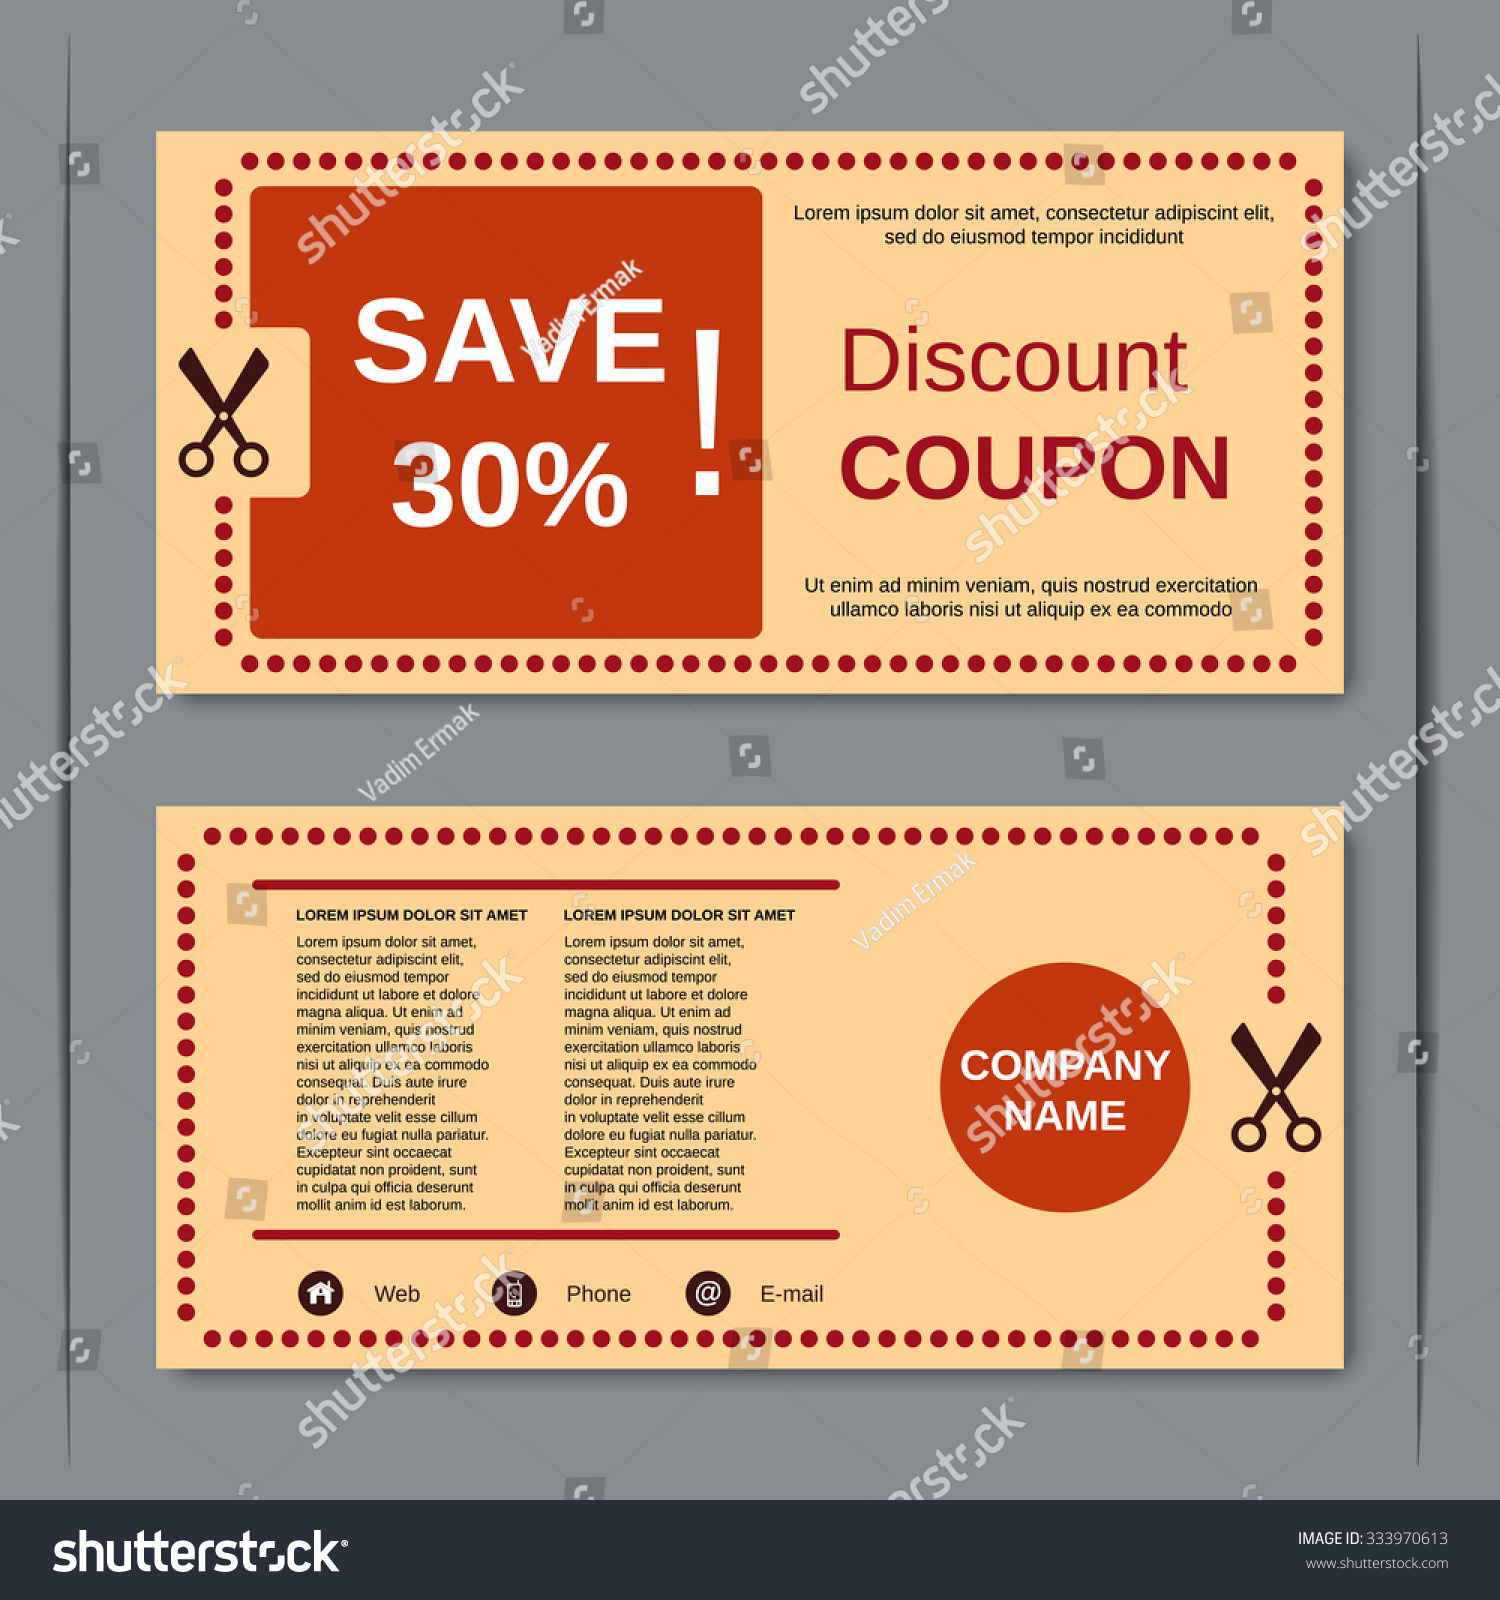 Design of discount card - Discount Coupon Gift Voucher Gift Certificate Invitation Card Label Sticker Design